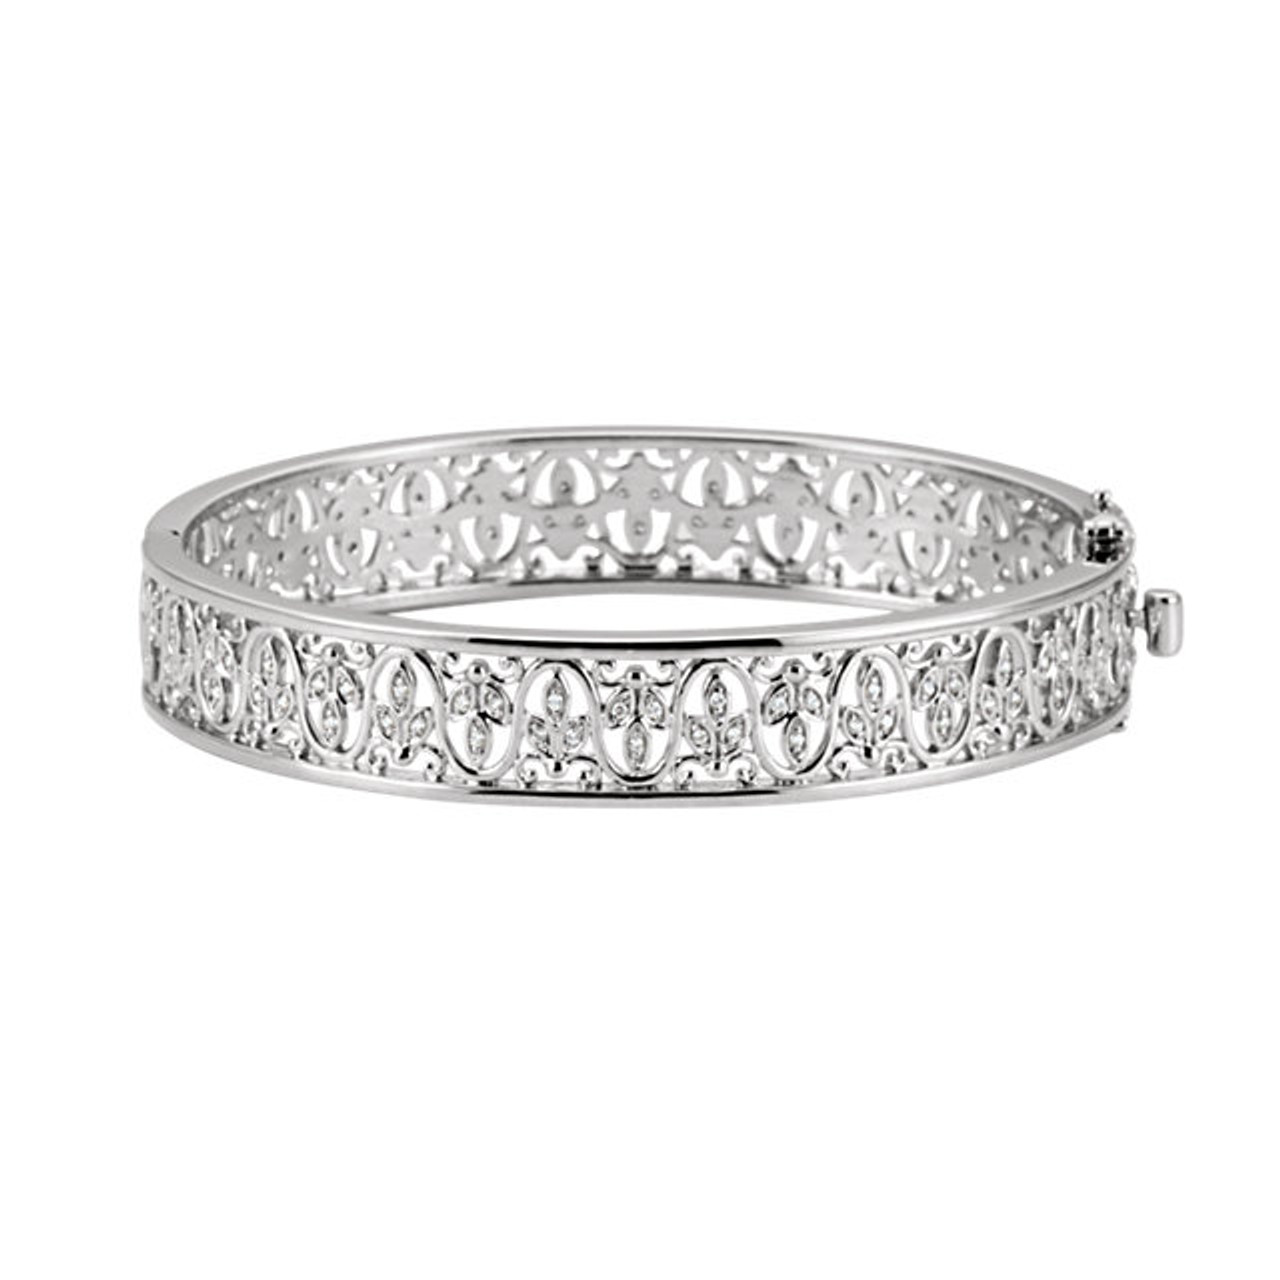 y eternity sasha primak bangles diamond bangle pave bracelet